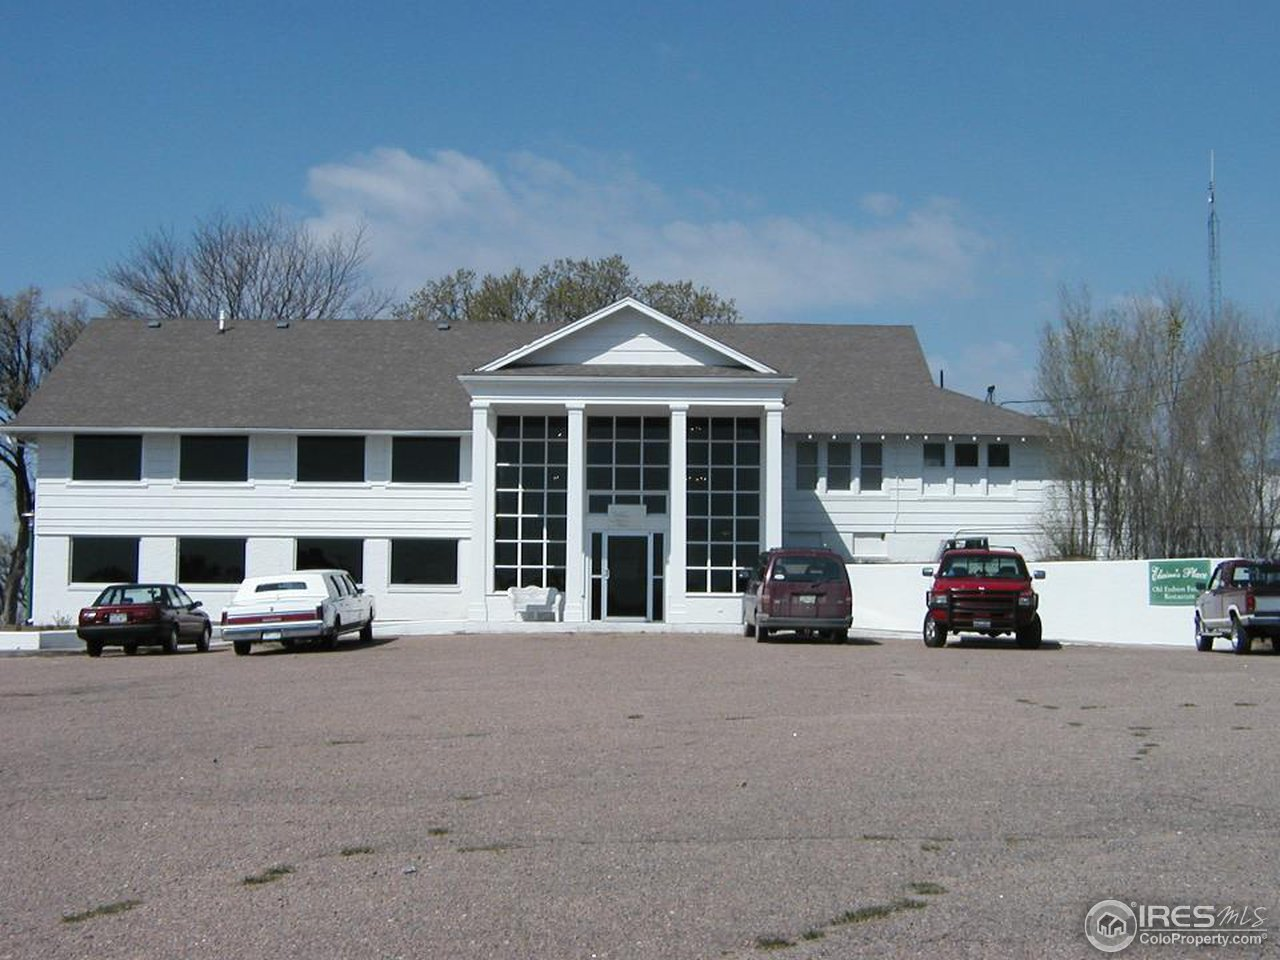 Property photo for 17590 county road t 5 fort morgan co 80701